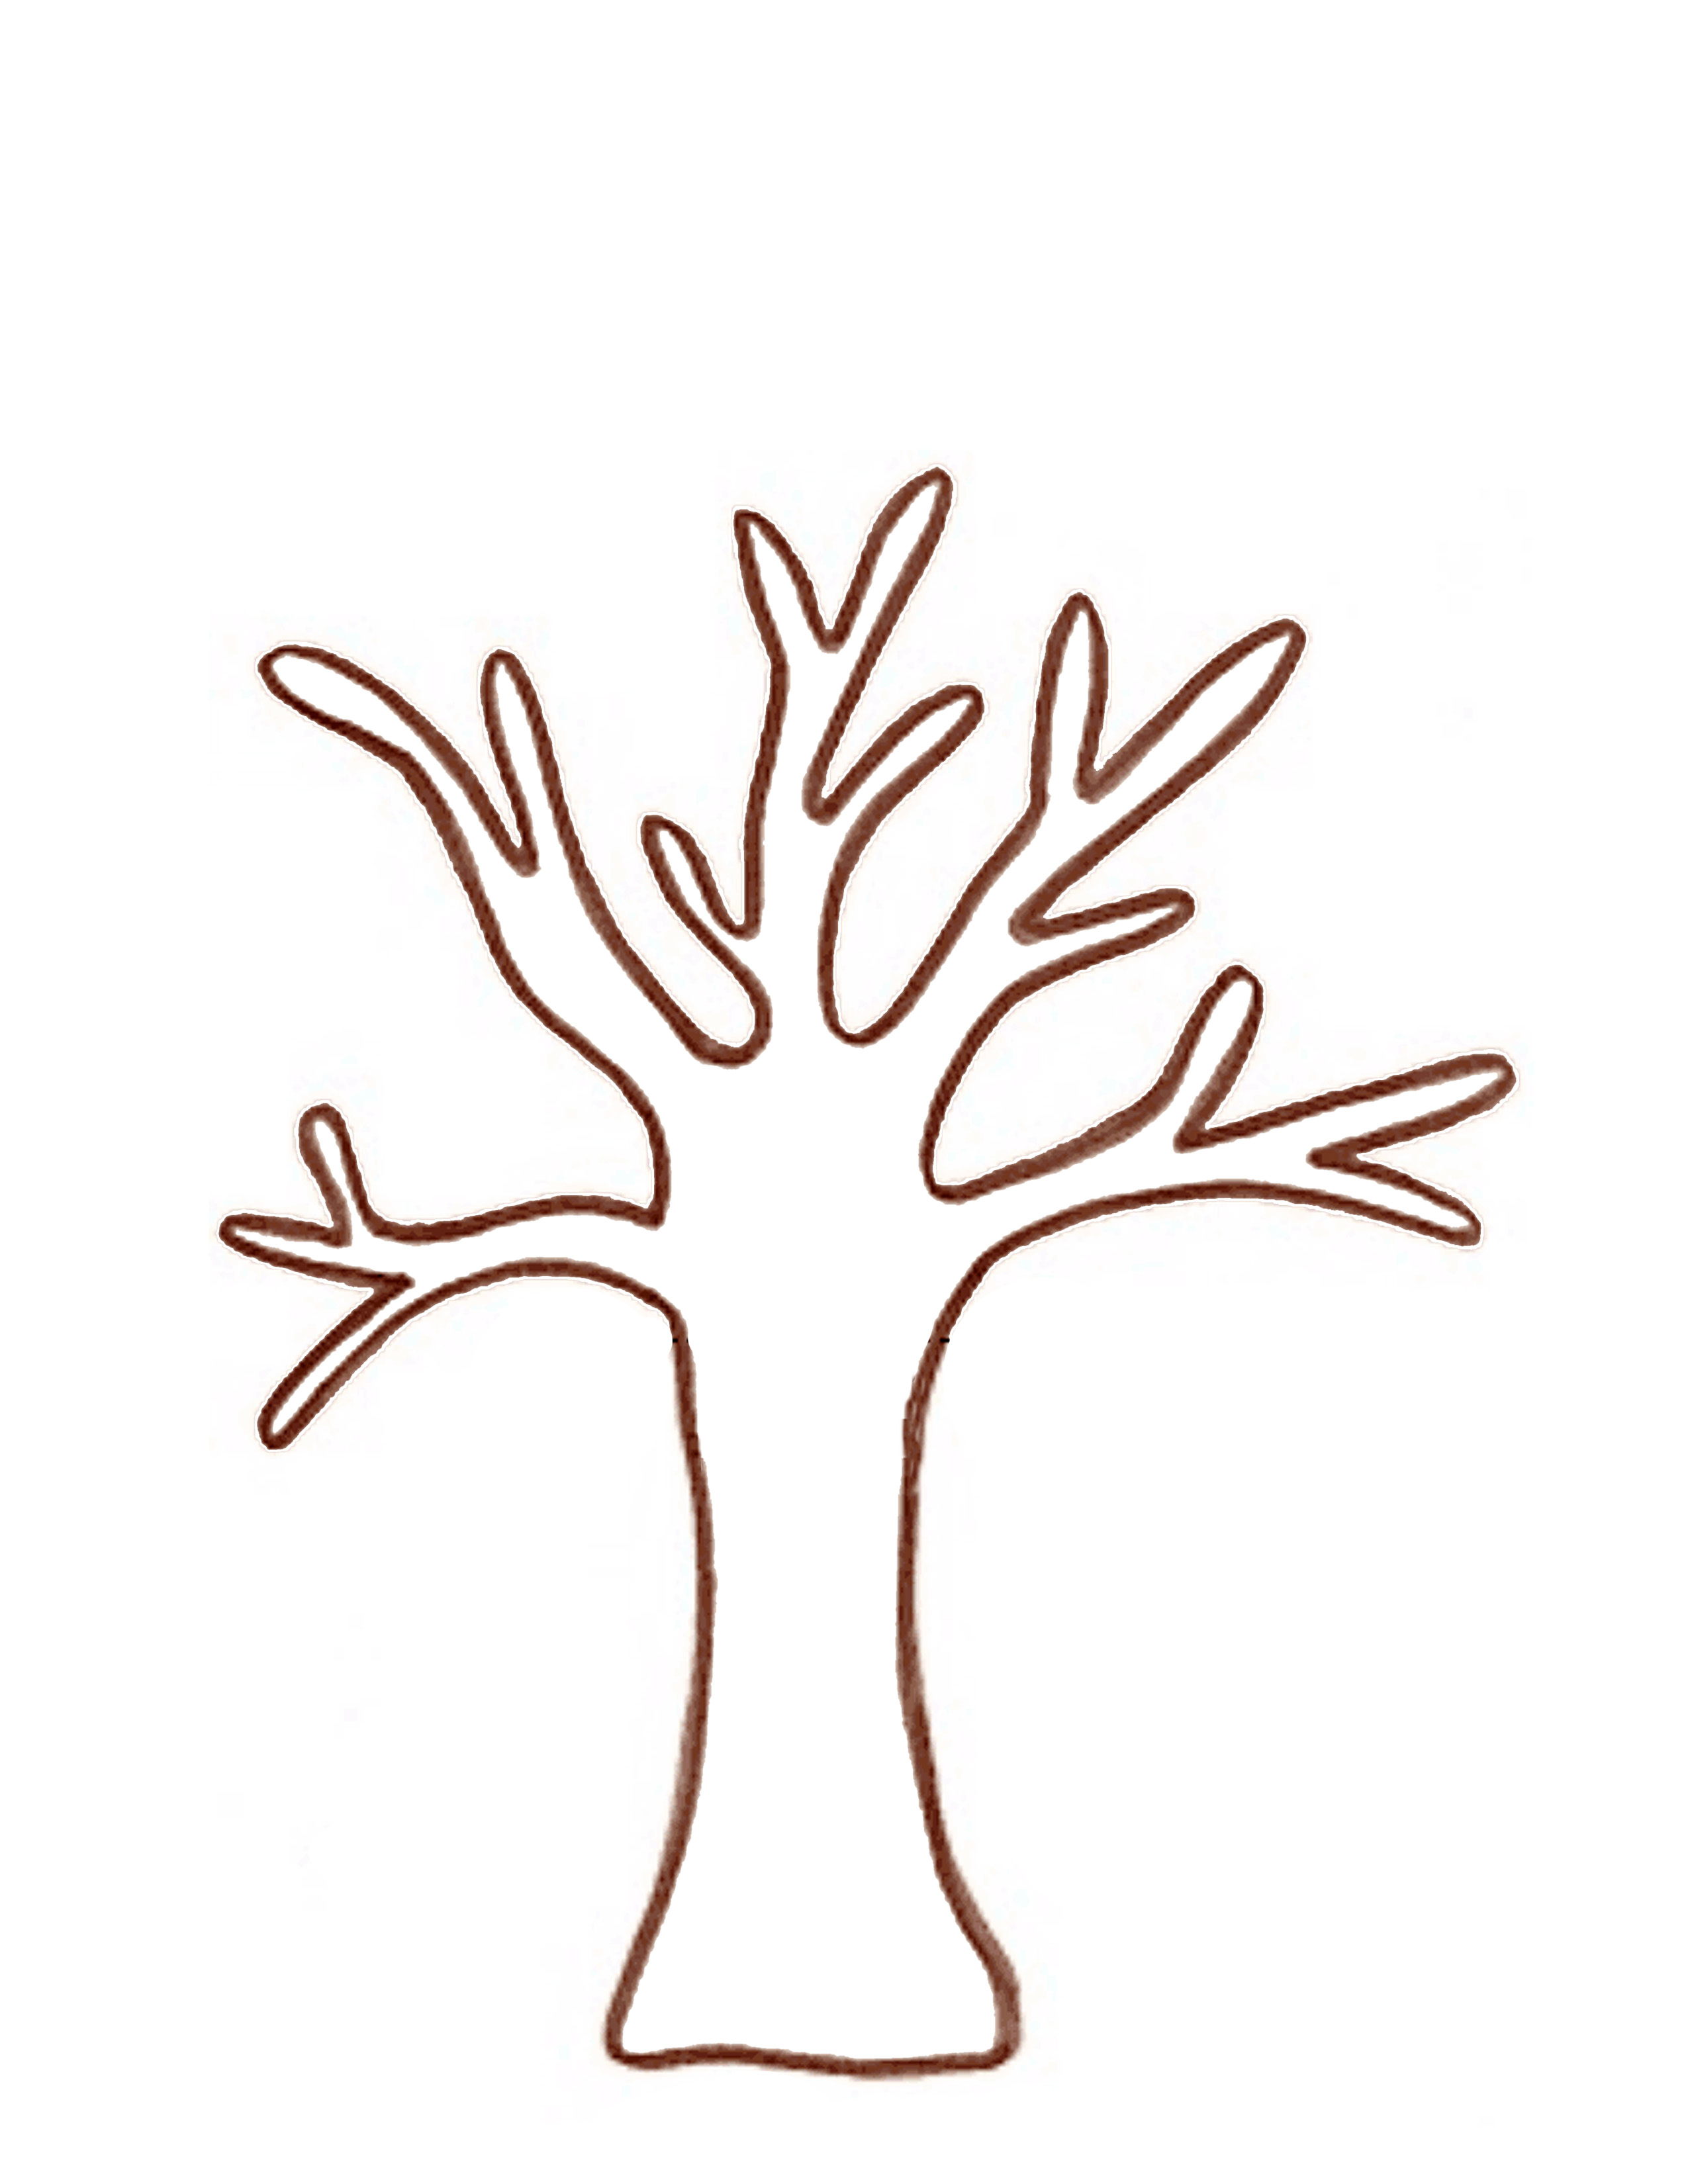 Best Photos of Tree Trunk Outline - Tree with Branches Clip Art ...